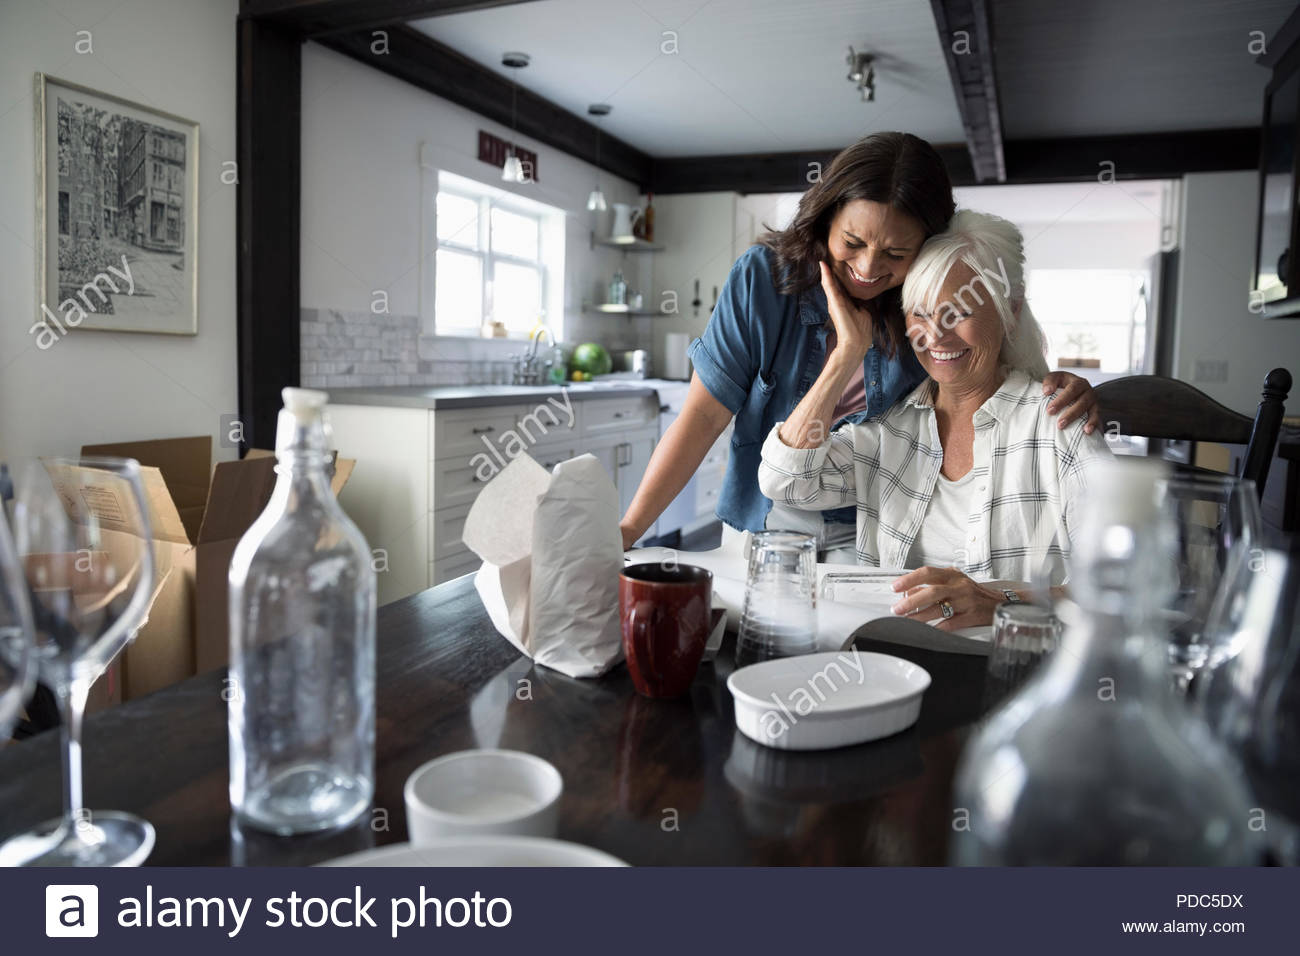 Affectionate daughter helping senior mother downsize, packing dishes - Stock Image